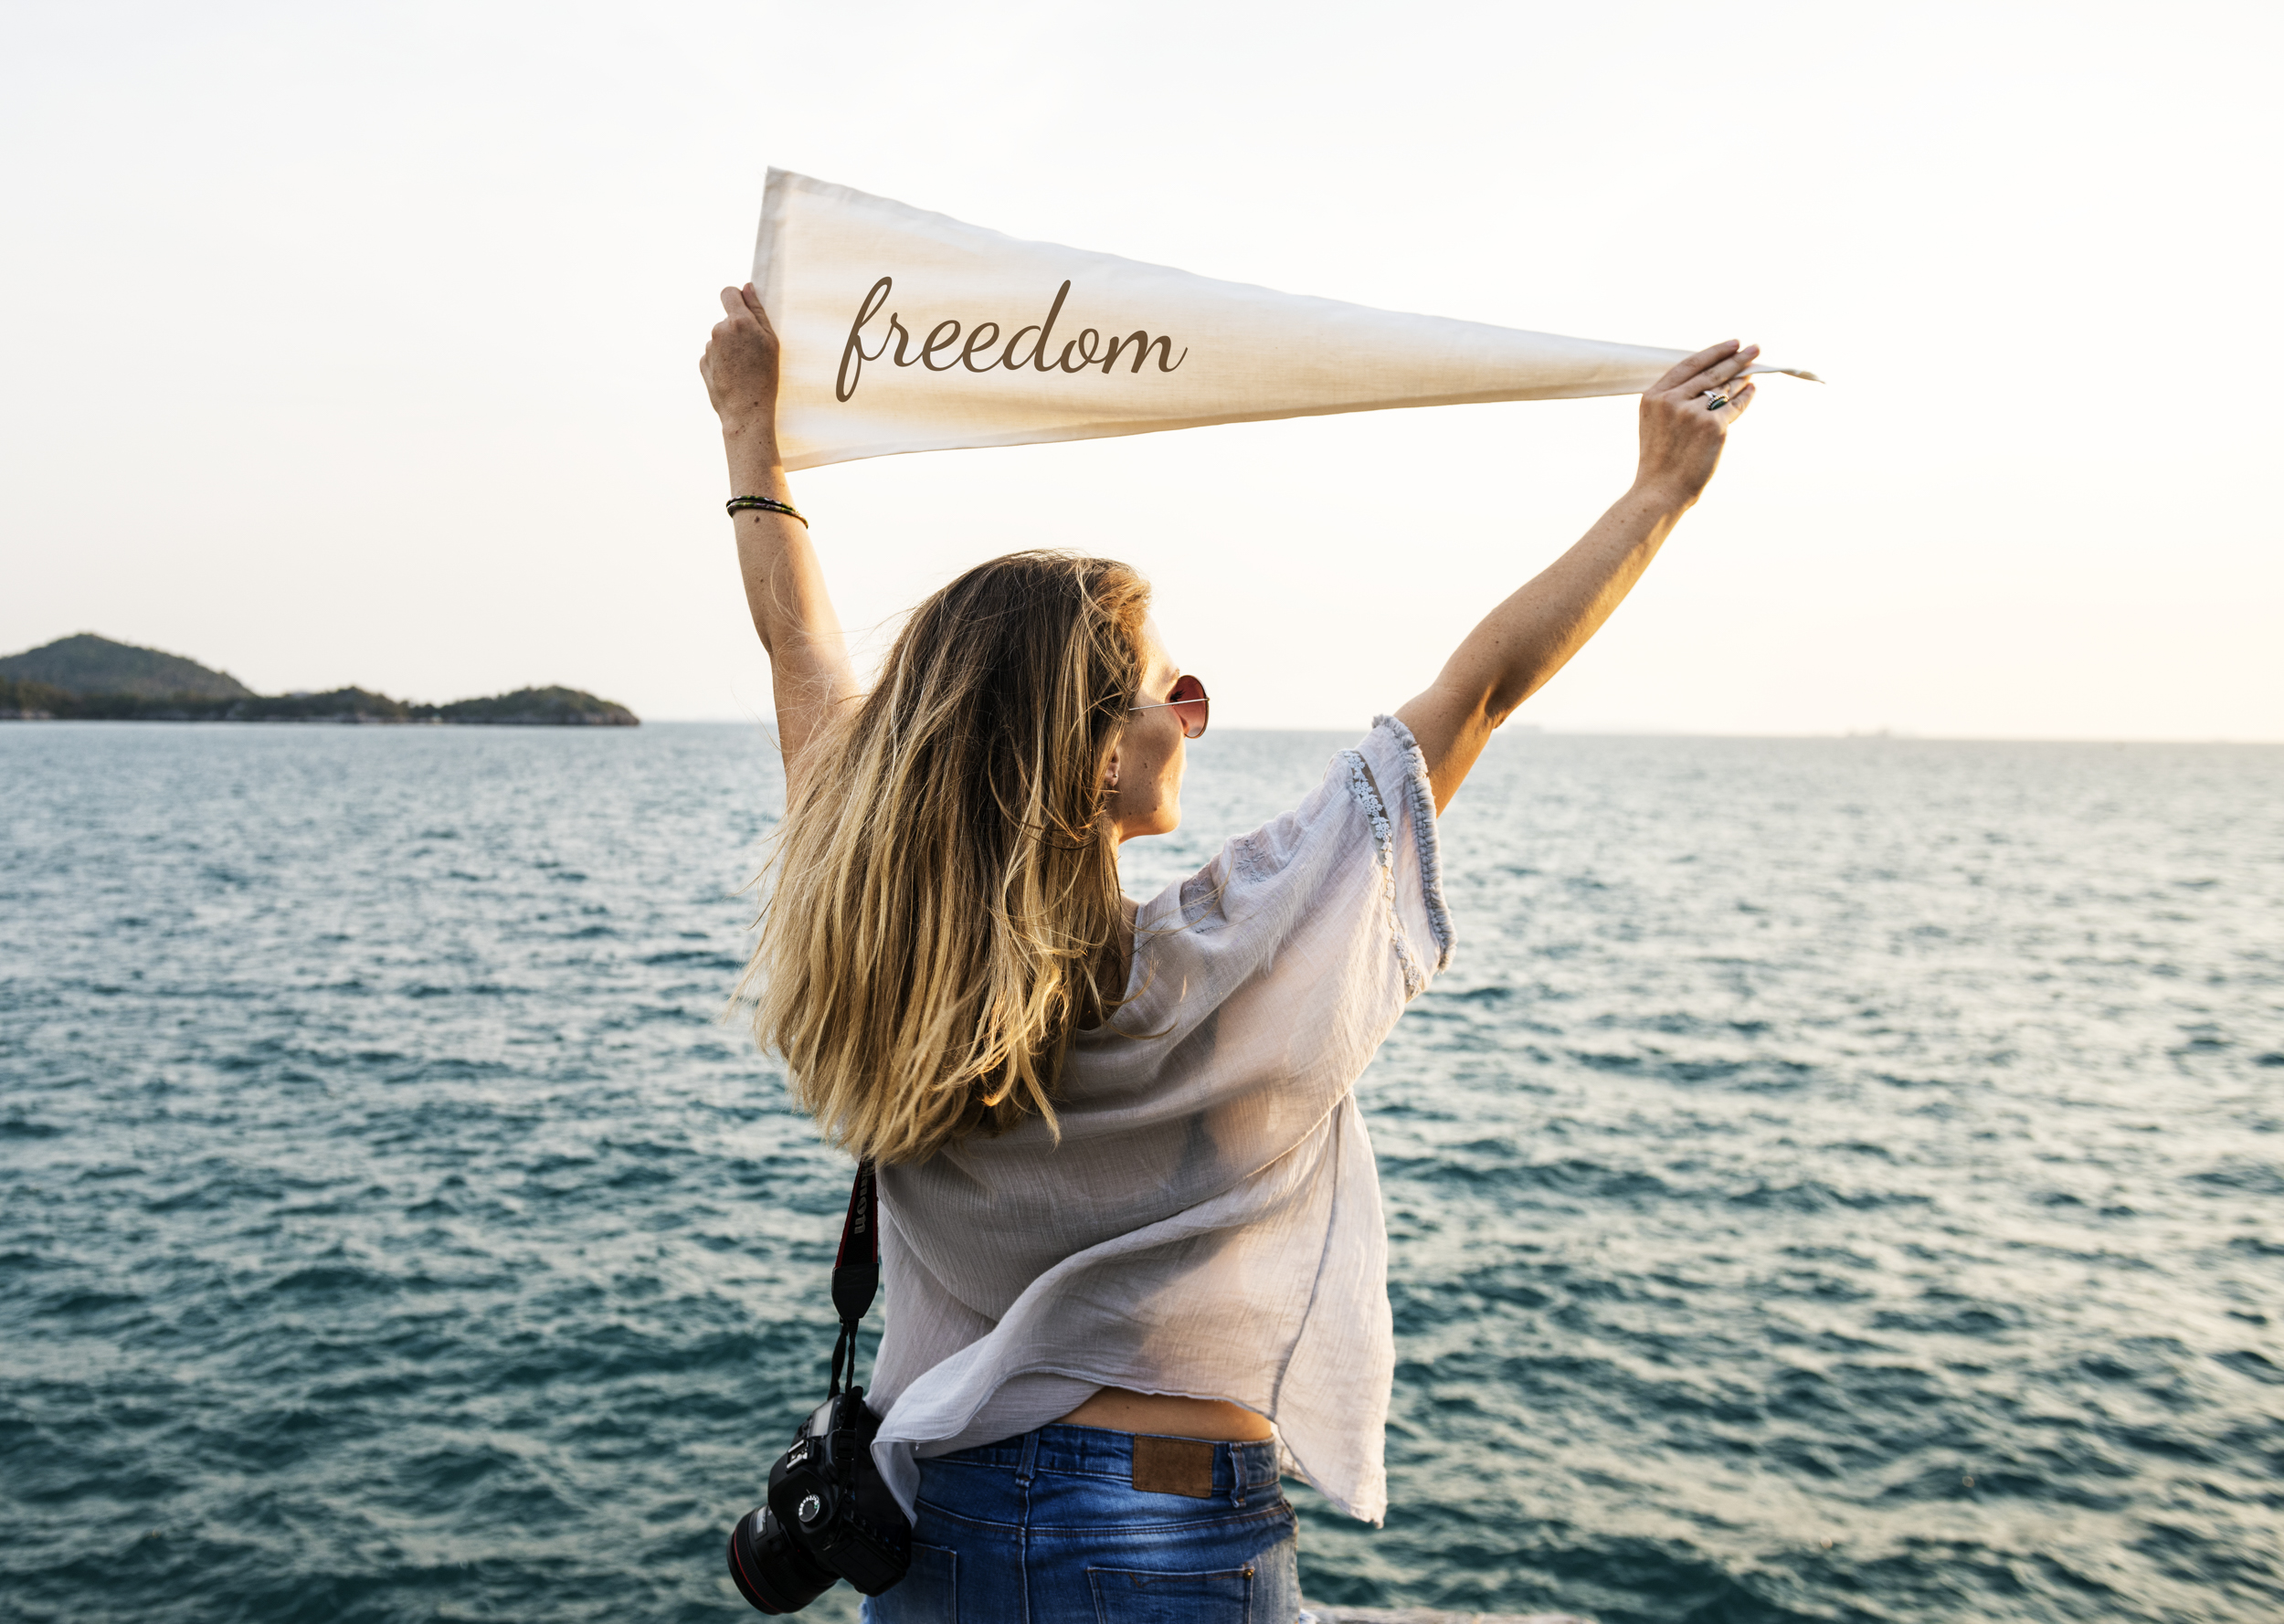 Put Money in The bank - Once your debt is gone… save 3 to 6 months worth of your expenses in a savings account. This money is your freedom fund - this give you options that most people never have.